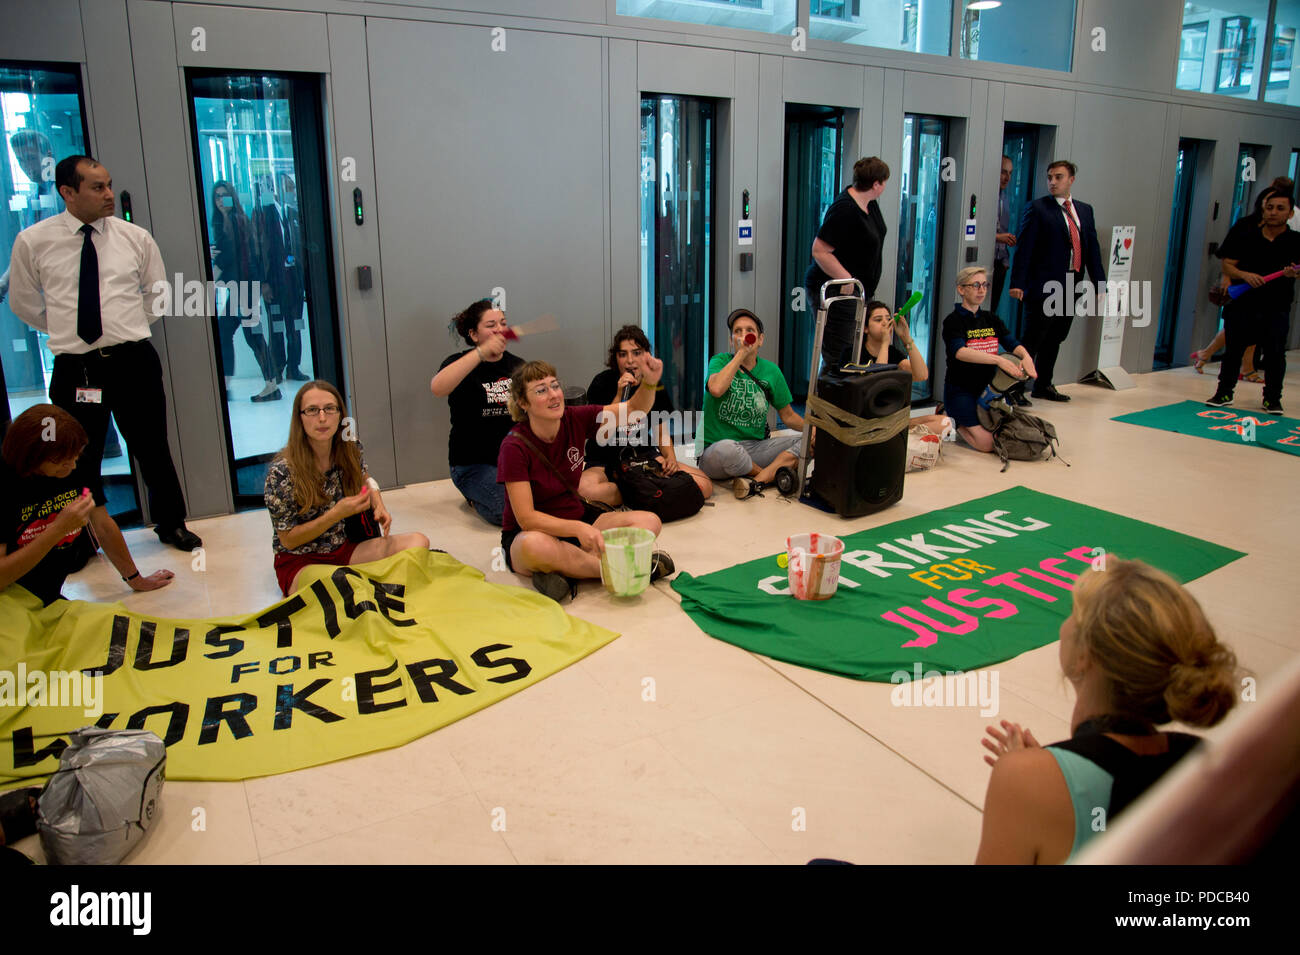 London, UK. 8th August, 2018. Ministry of Justice, Petty France, London. Cleaners from the United Voices of the World Union strike for three days demanding they be paid the London Living Wage of £10.20 an hour instead of the minimum wage of £7.83 that they currently get. Cleaners and their supporters occupied the Ministry for over an hour until a meeting was arranged with a Minister's representative, a meeting they have been requesting since December 2017. Credit: Jenny Matthews/Alamy Live News - Stock Image